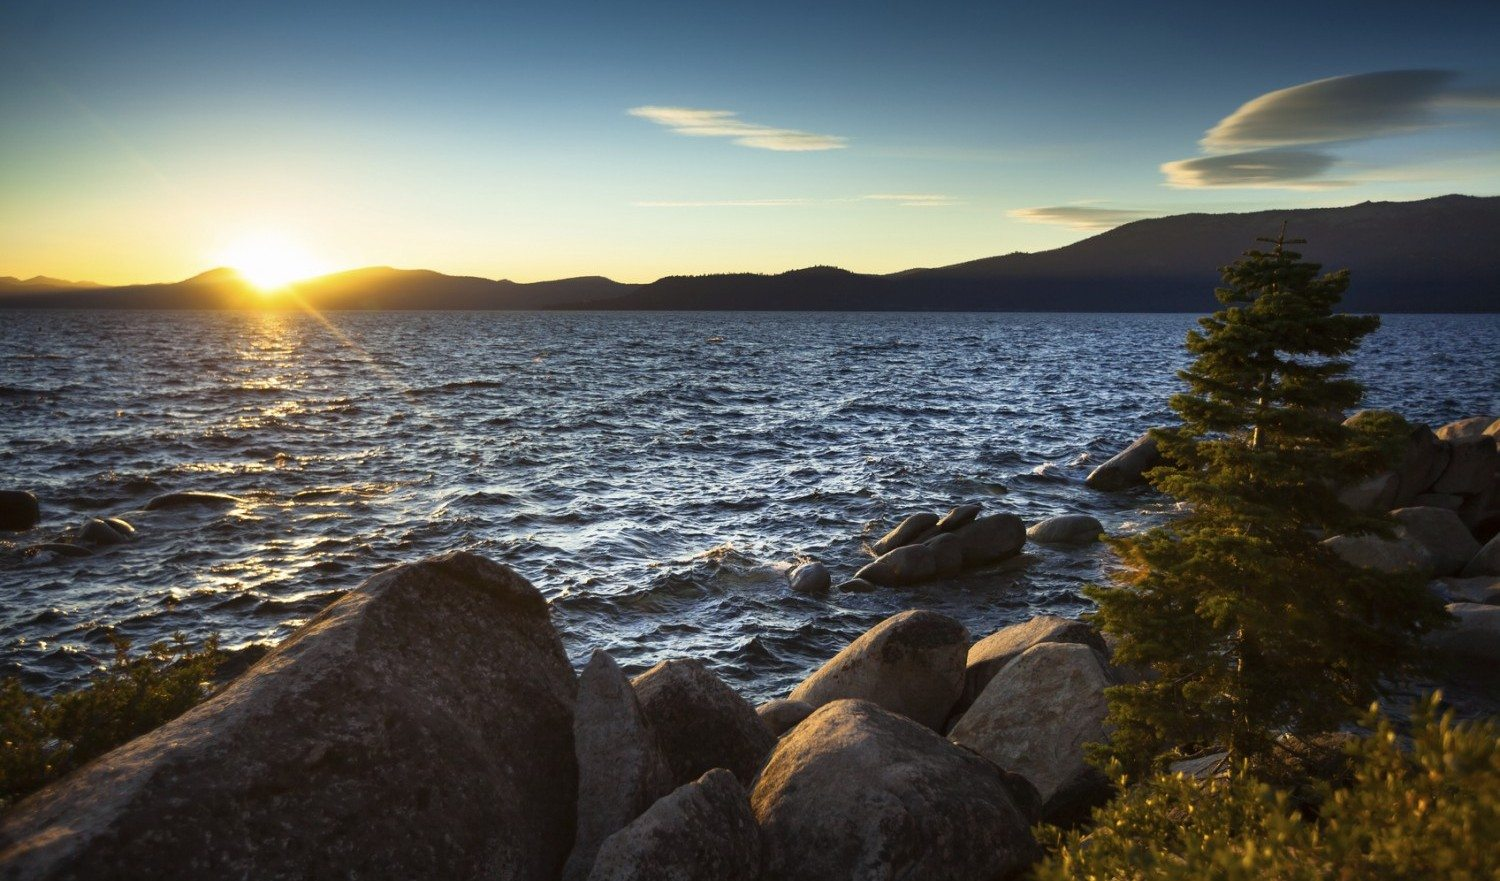 The evening sun begins to hit the horizon, making everything glow brightly in this view from a camping spot at Sand Harbor State Beach at Lake Tahoe